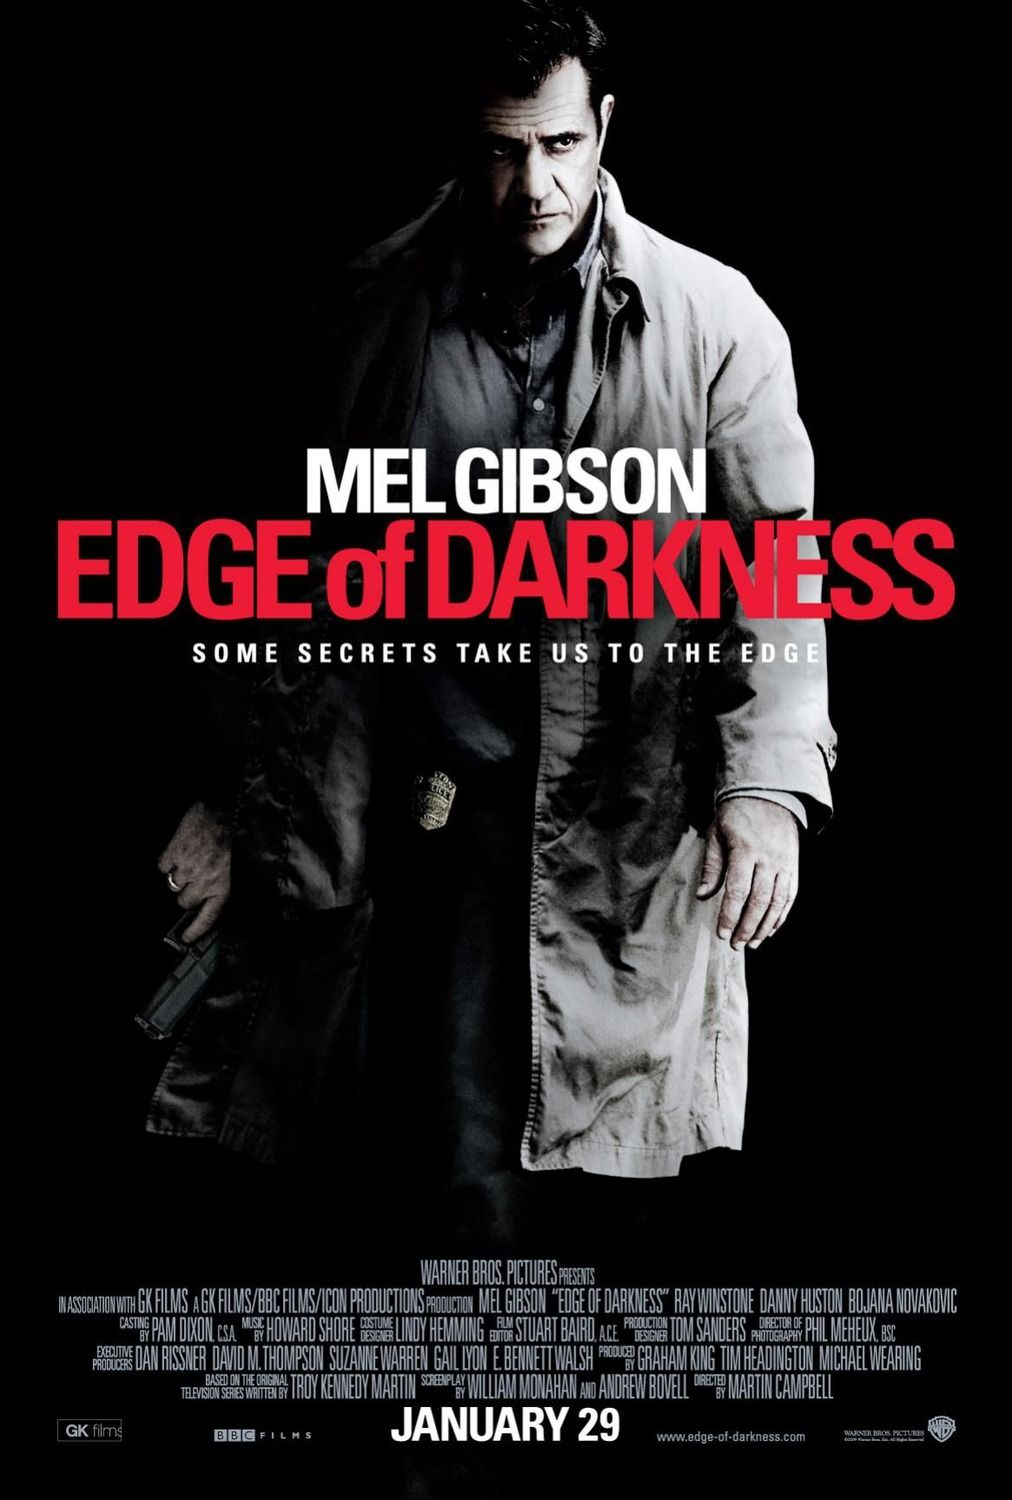 Edge Of Darkness 2010 Mel Gibson Movies Movie Posters